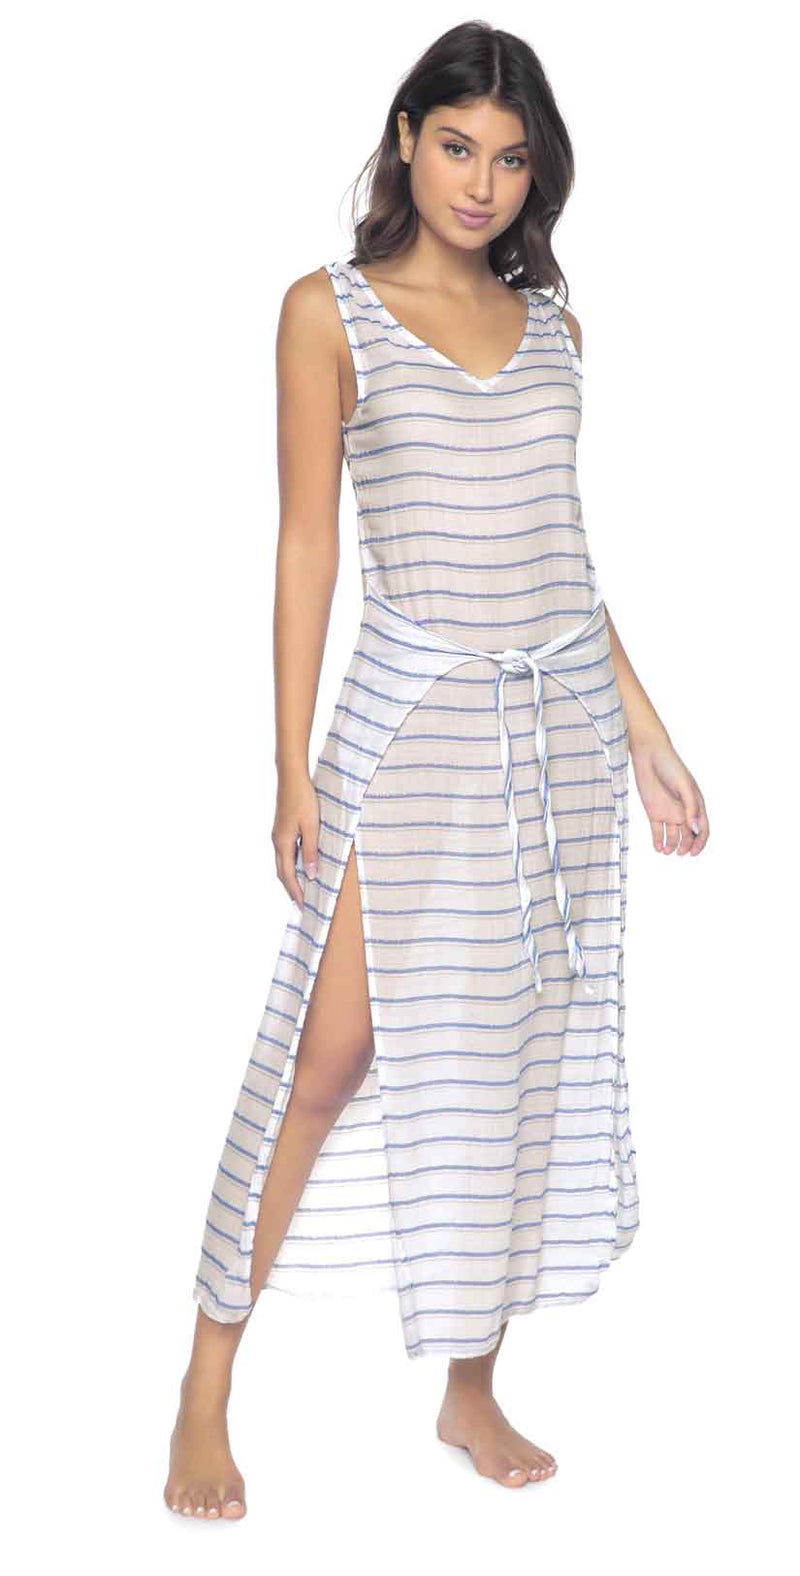 PilyQ Bay Stripe Sophie Tie Dress: